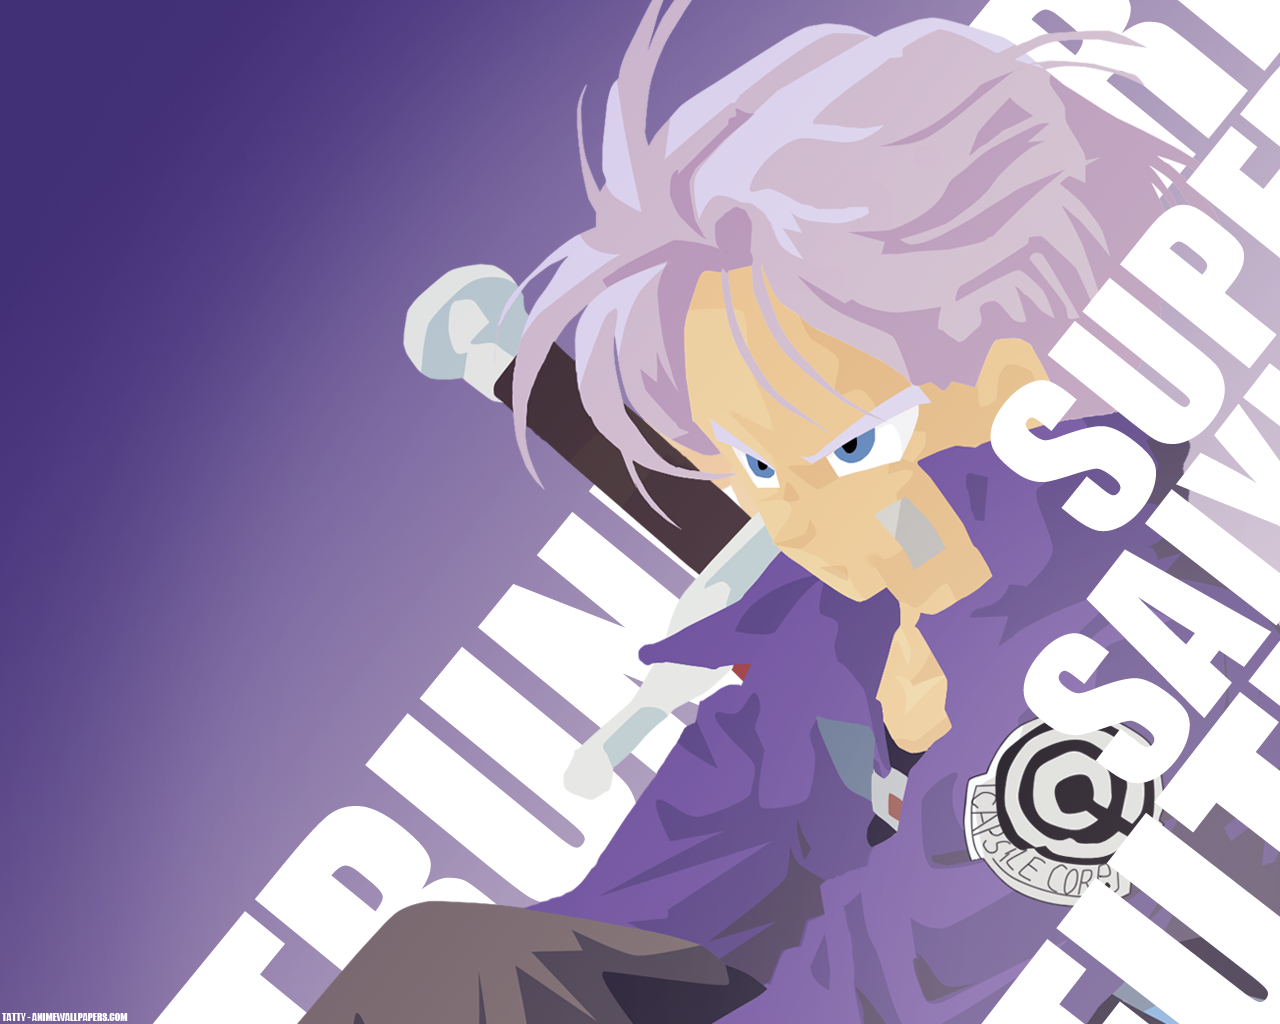 Trunks-wallpaper-23.jpg